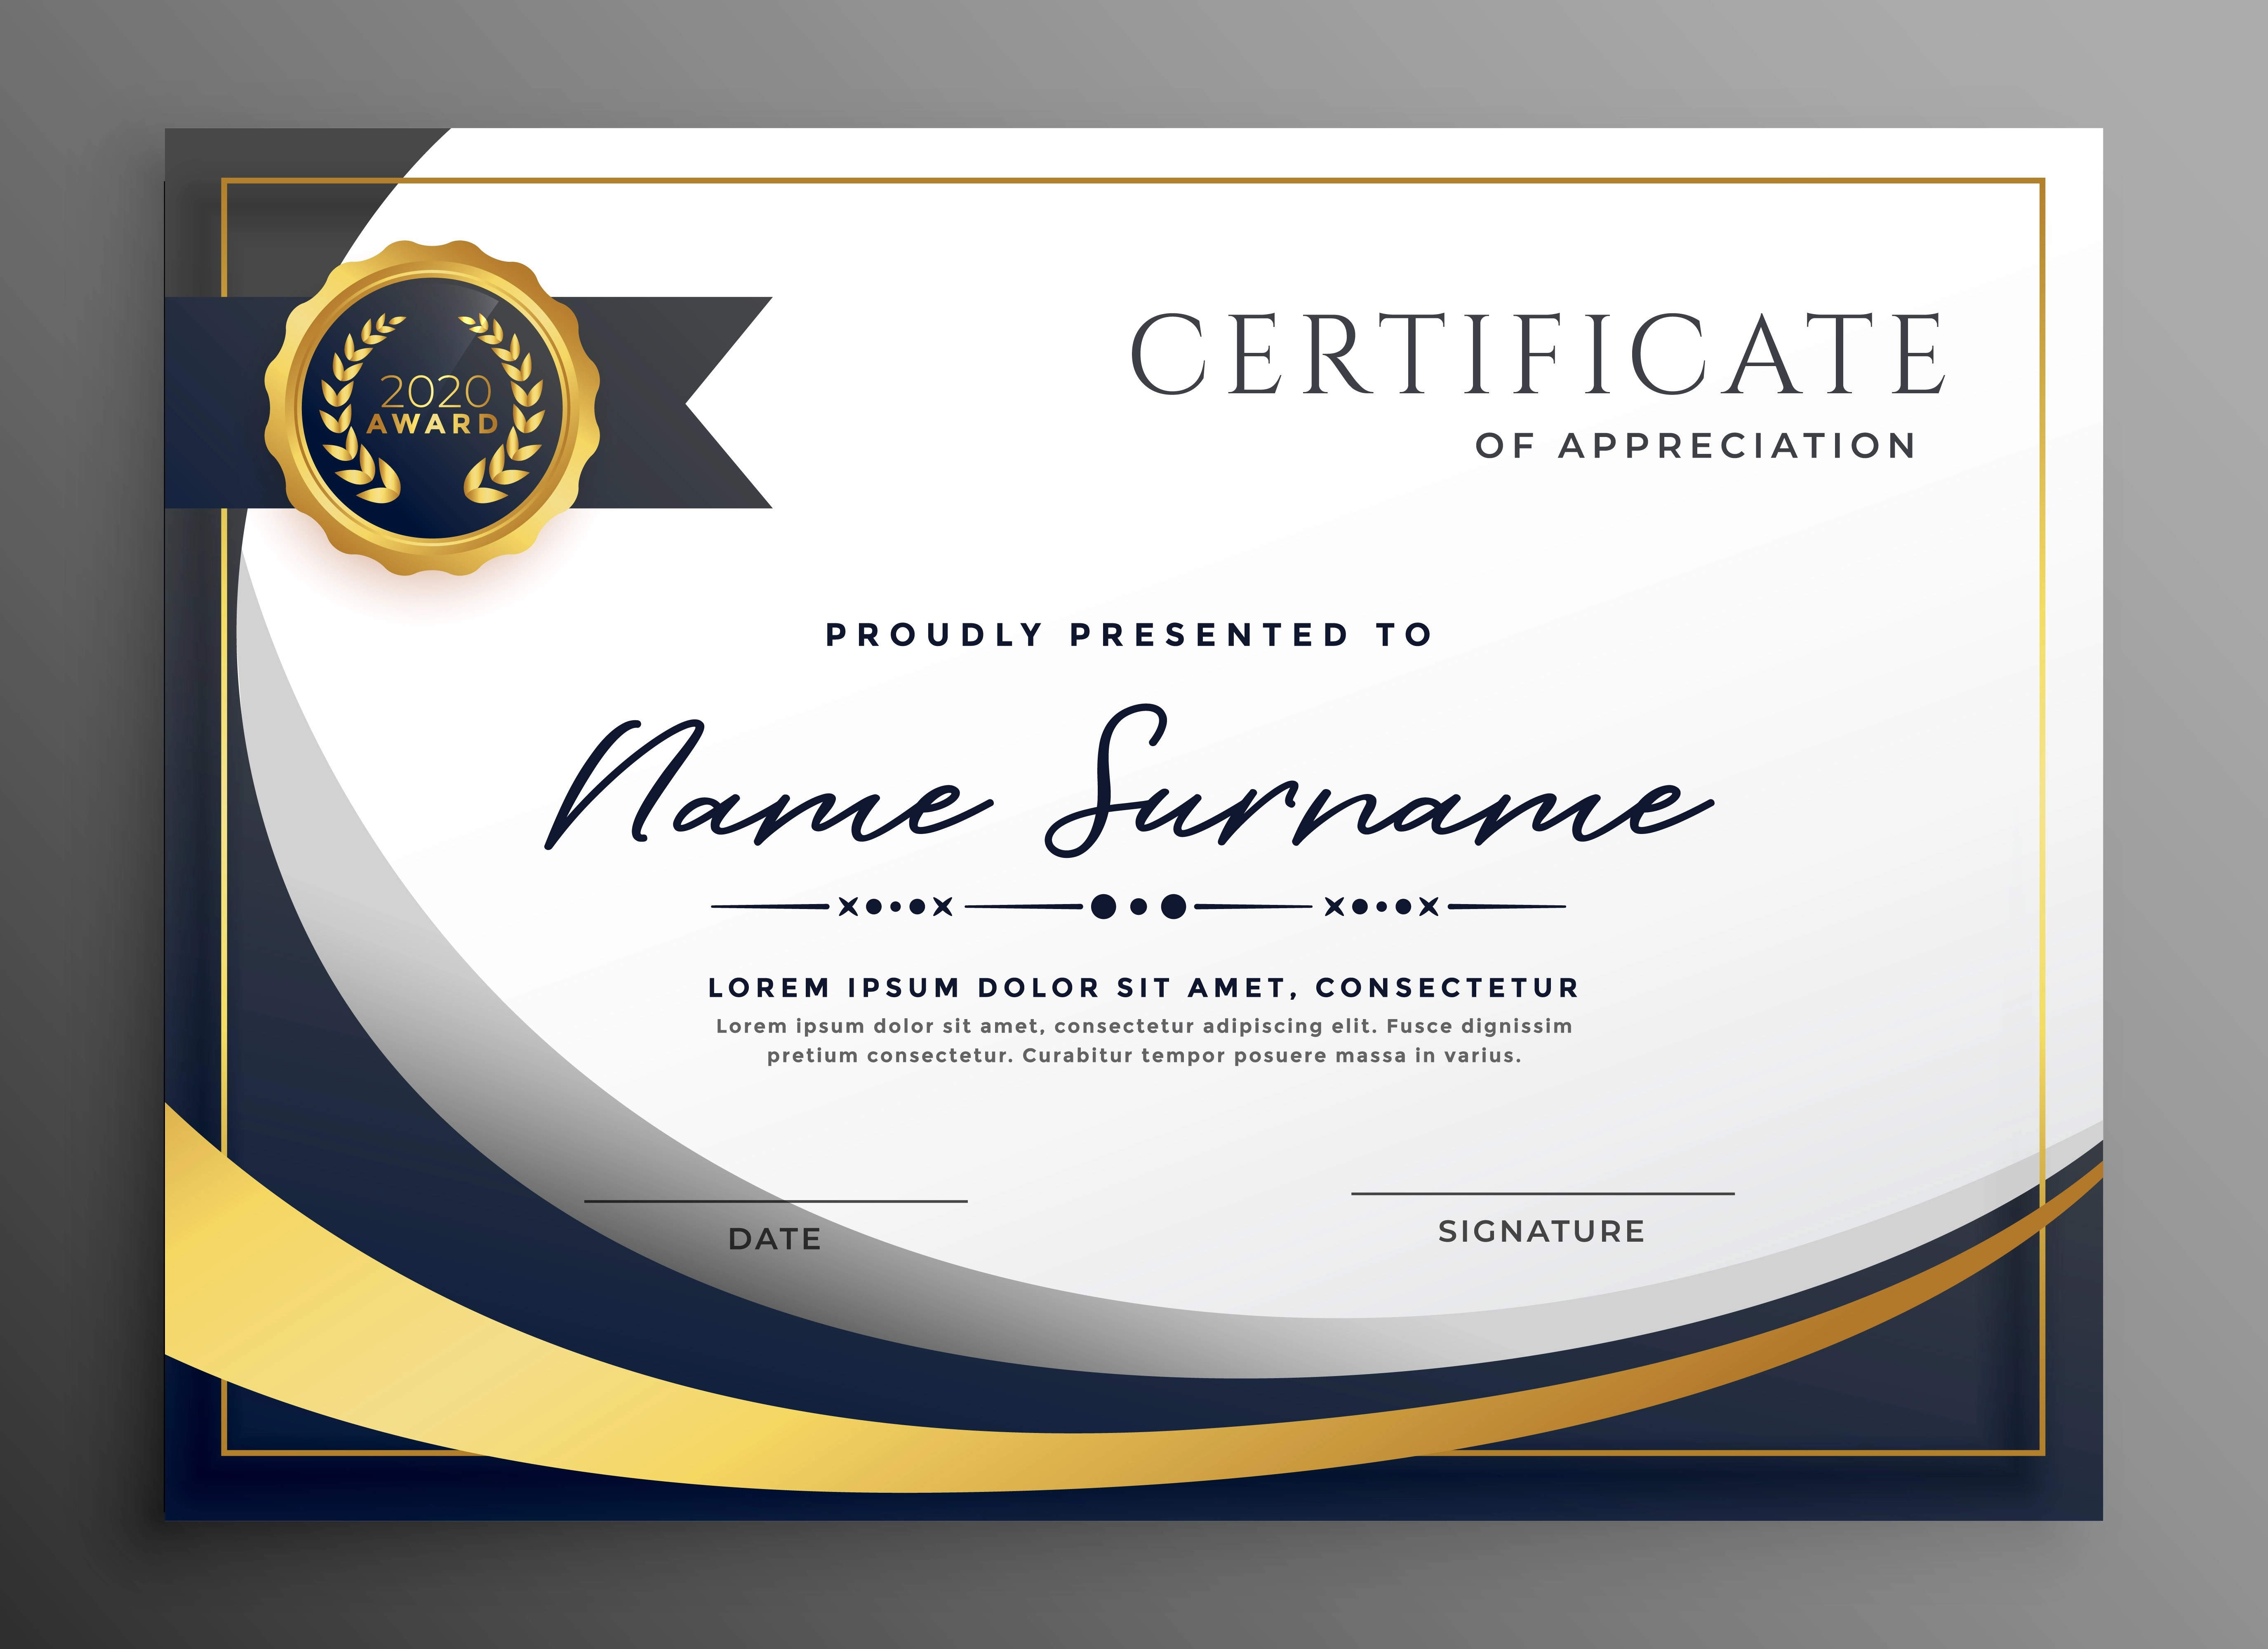 Certificate Background Free Vector Art - (144,765 Free ...